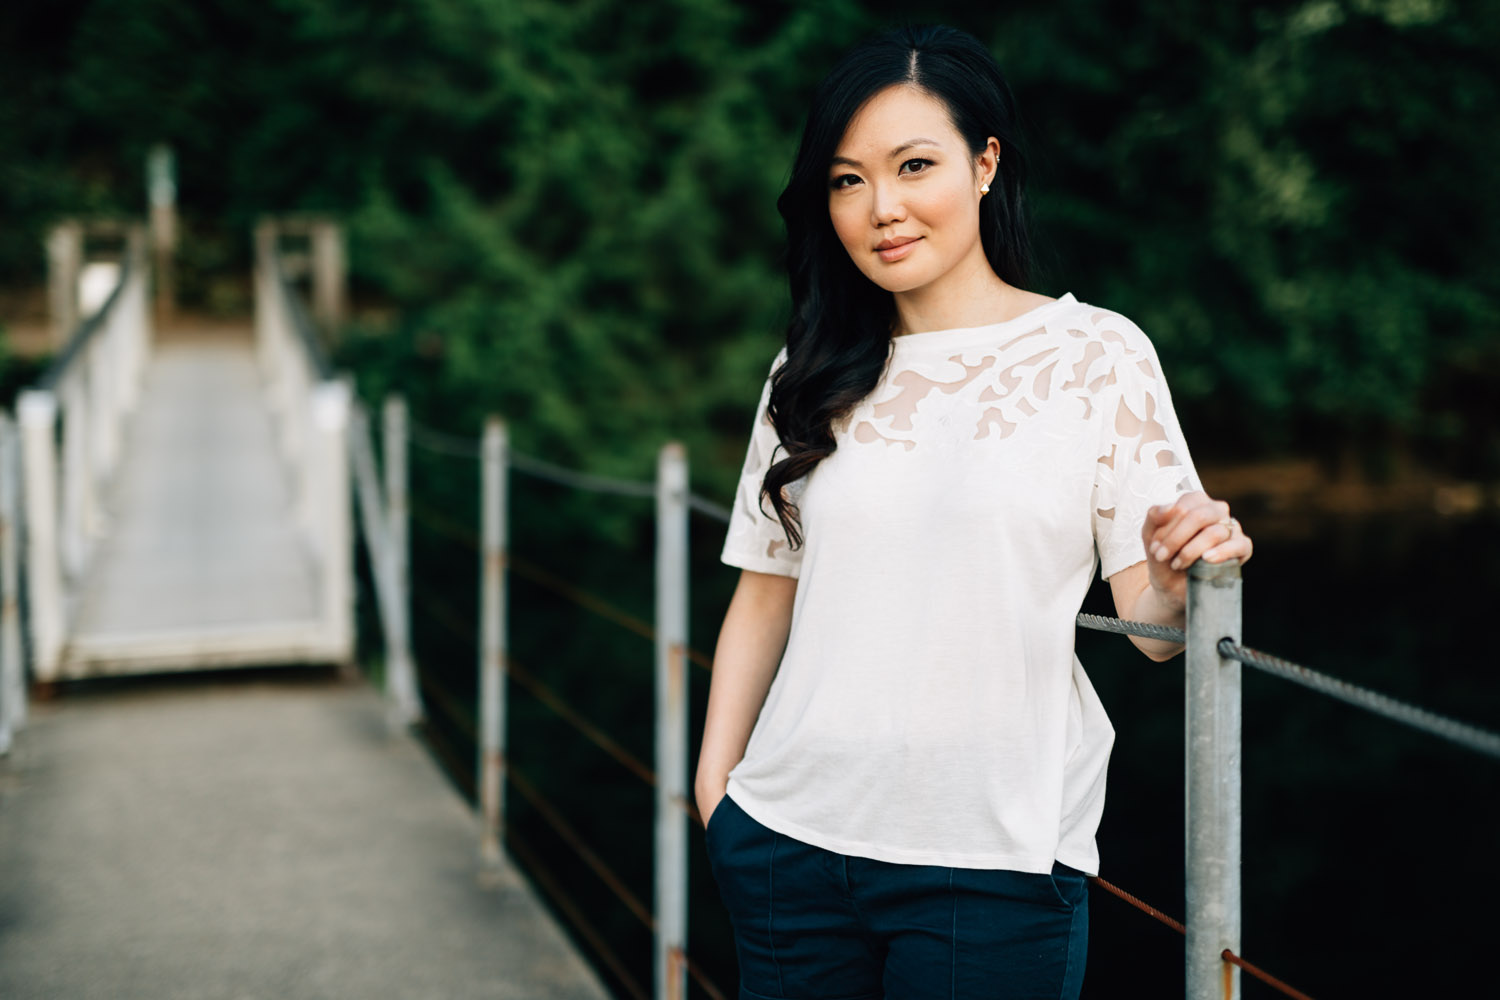 elaine kung portrait photography at sasamat lake in the summer during sunset